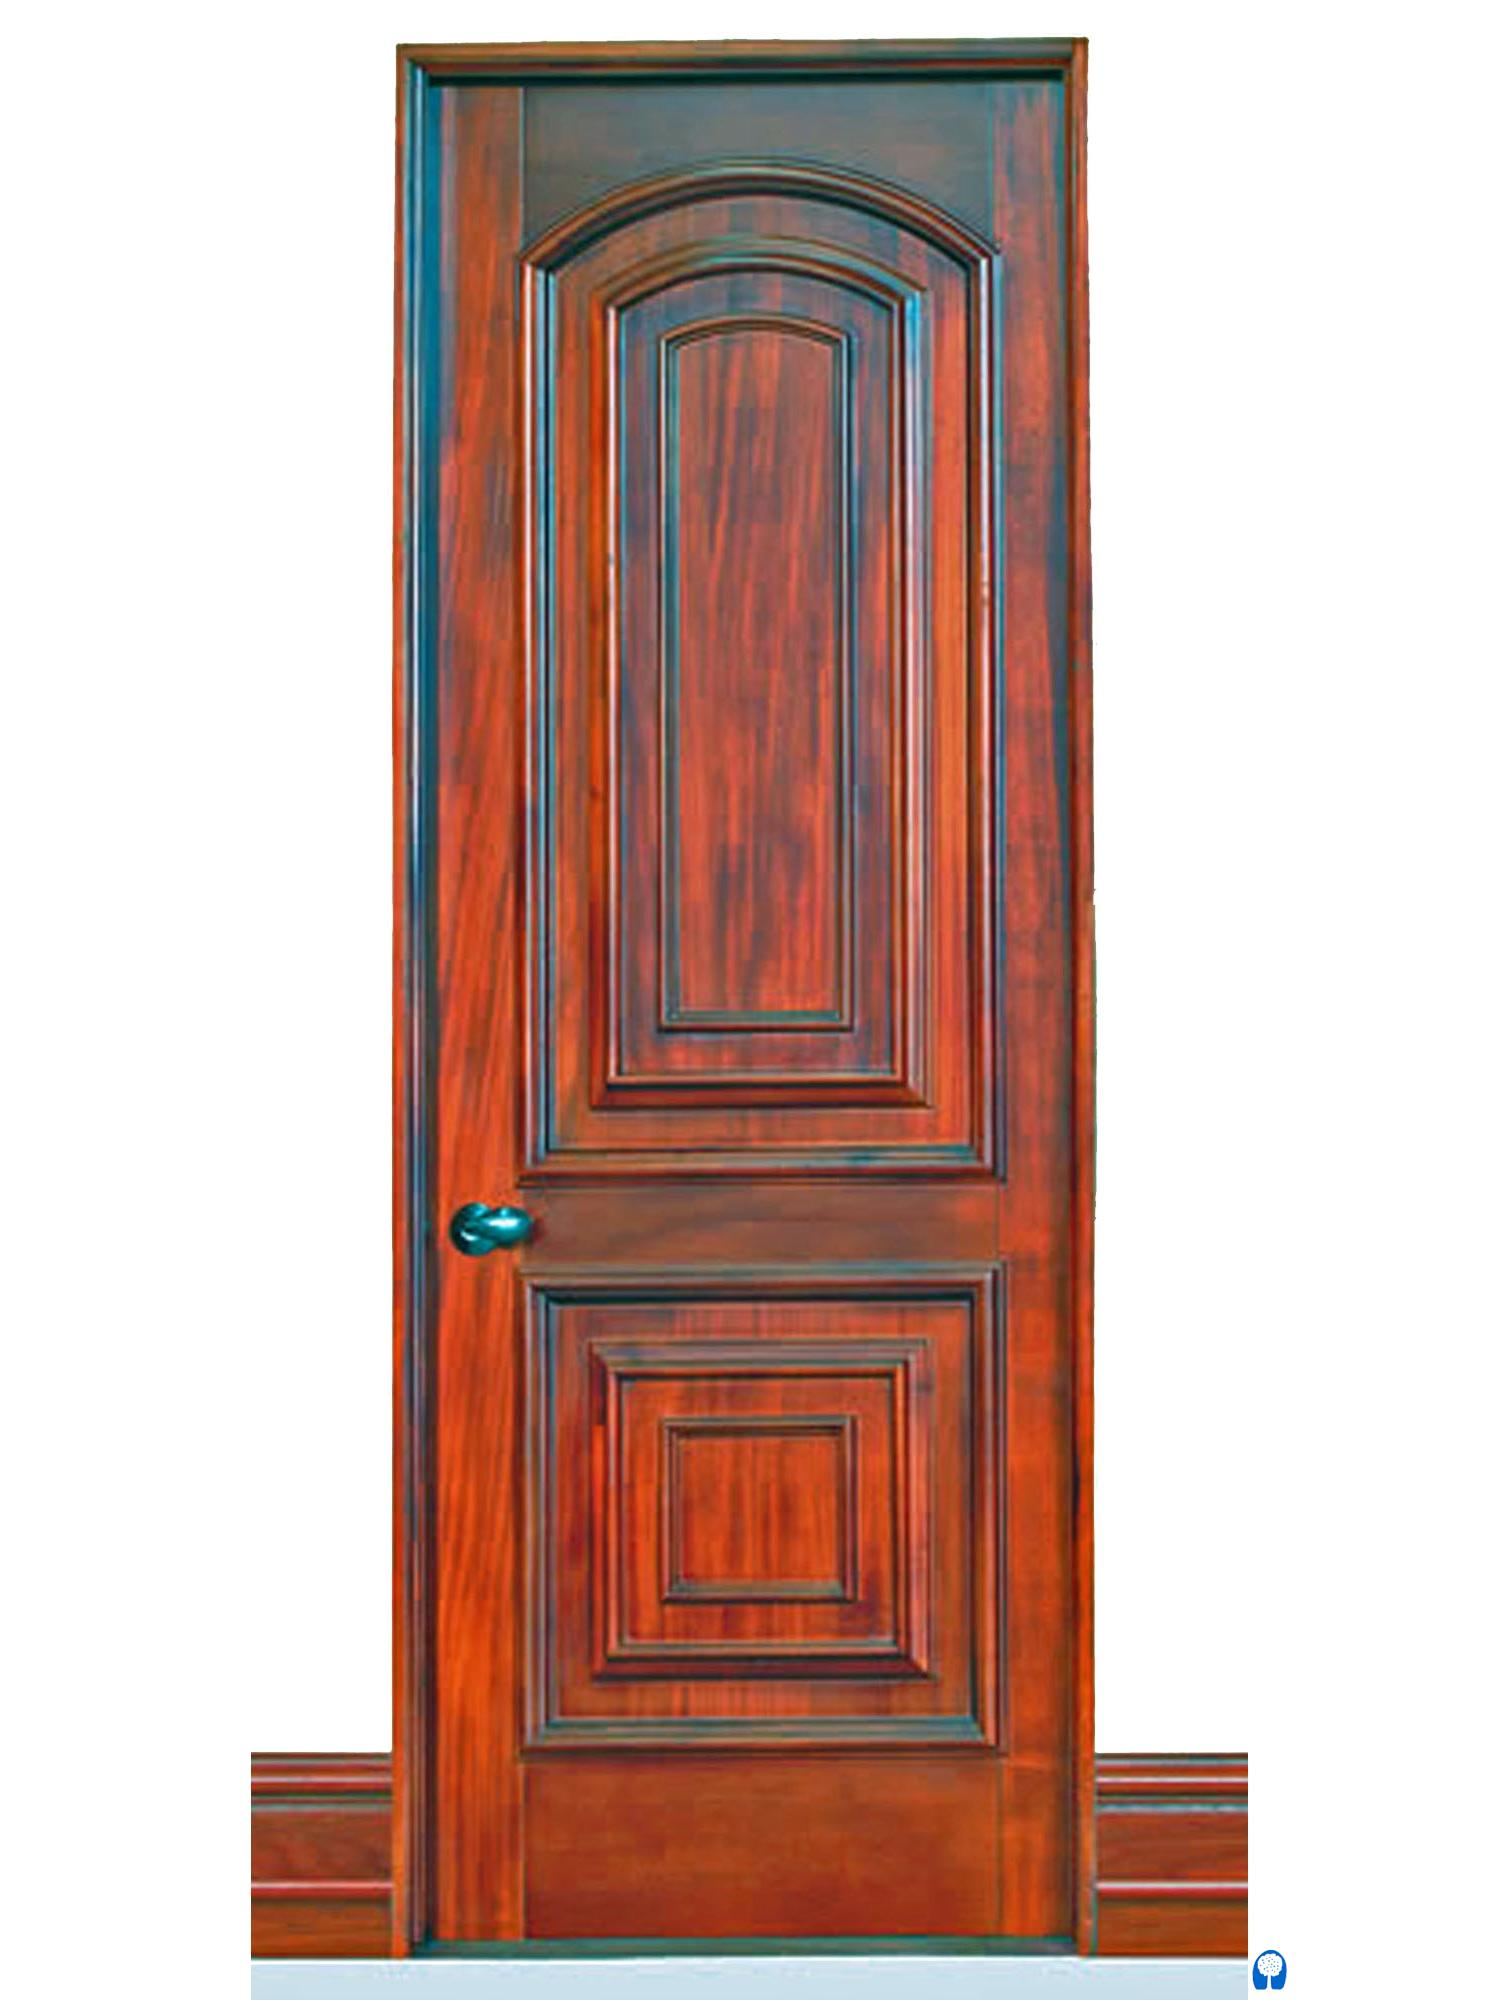 Princess mahogany interior doors sabana windows for Mahogany interior doors